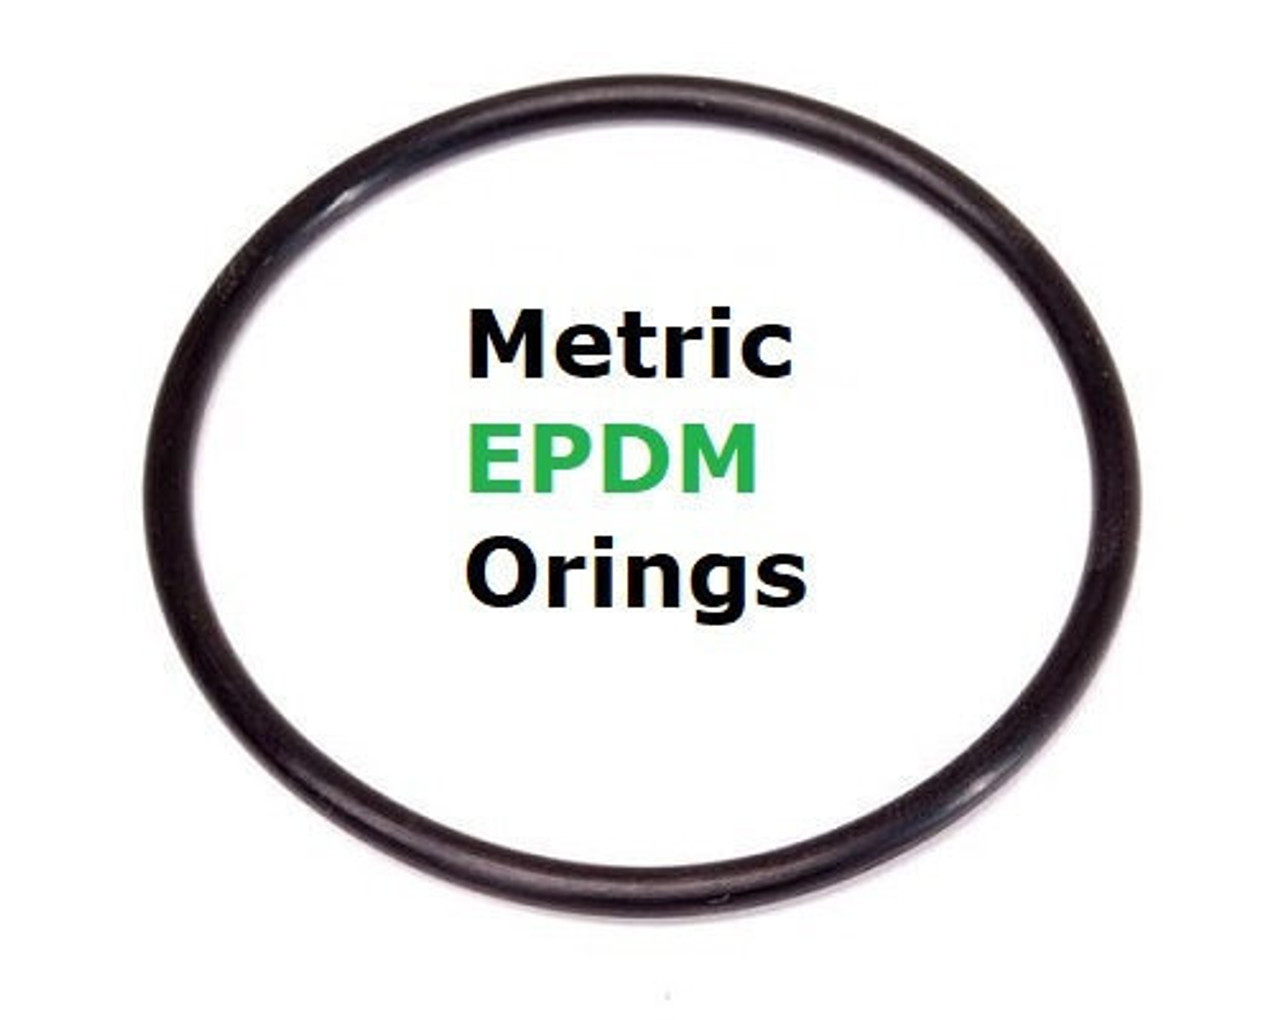 Metric EPDM 70  Orings 9 x 4mm  Minimum 5 pcs